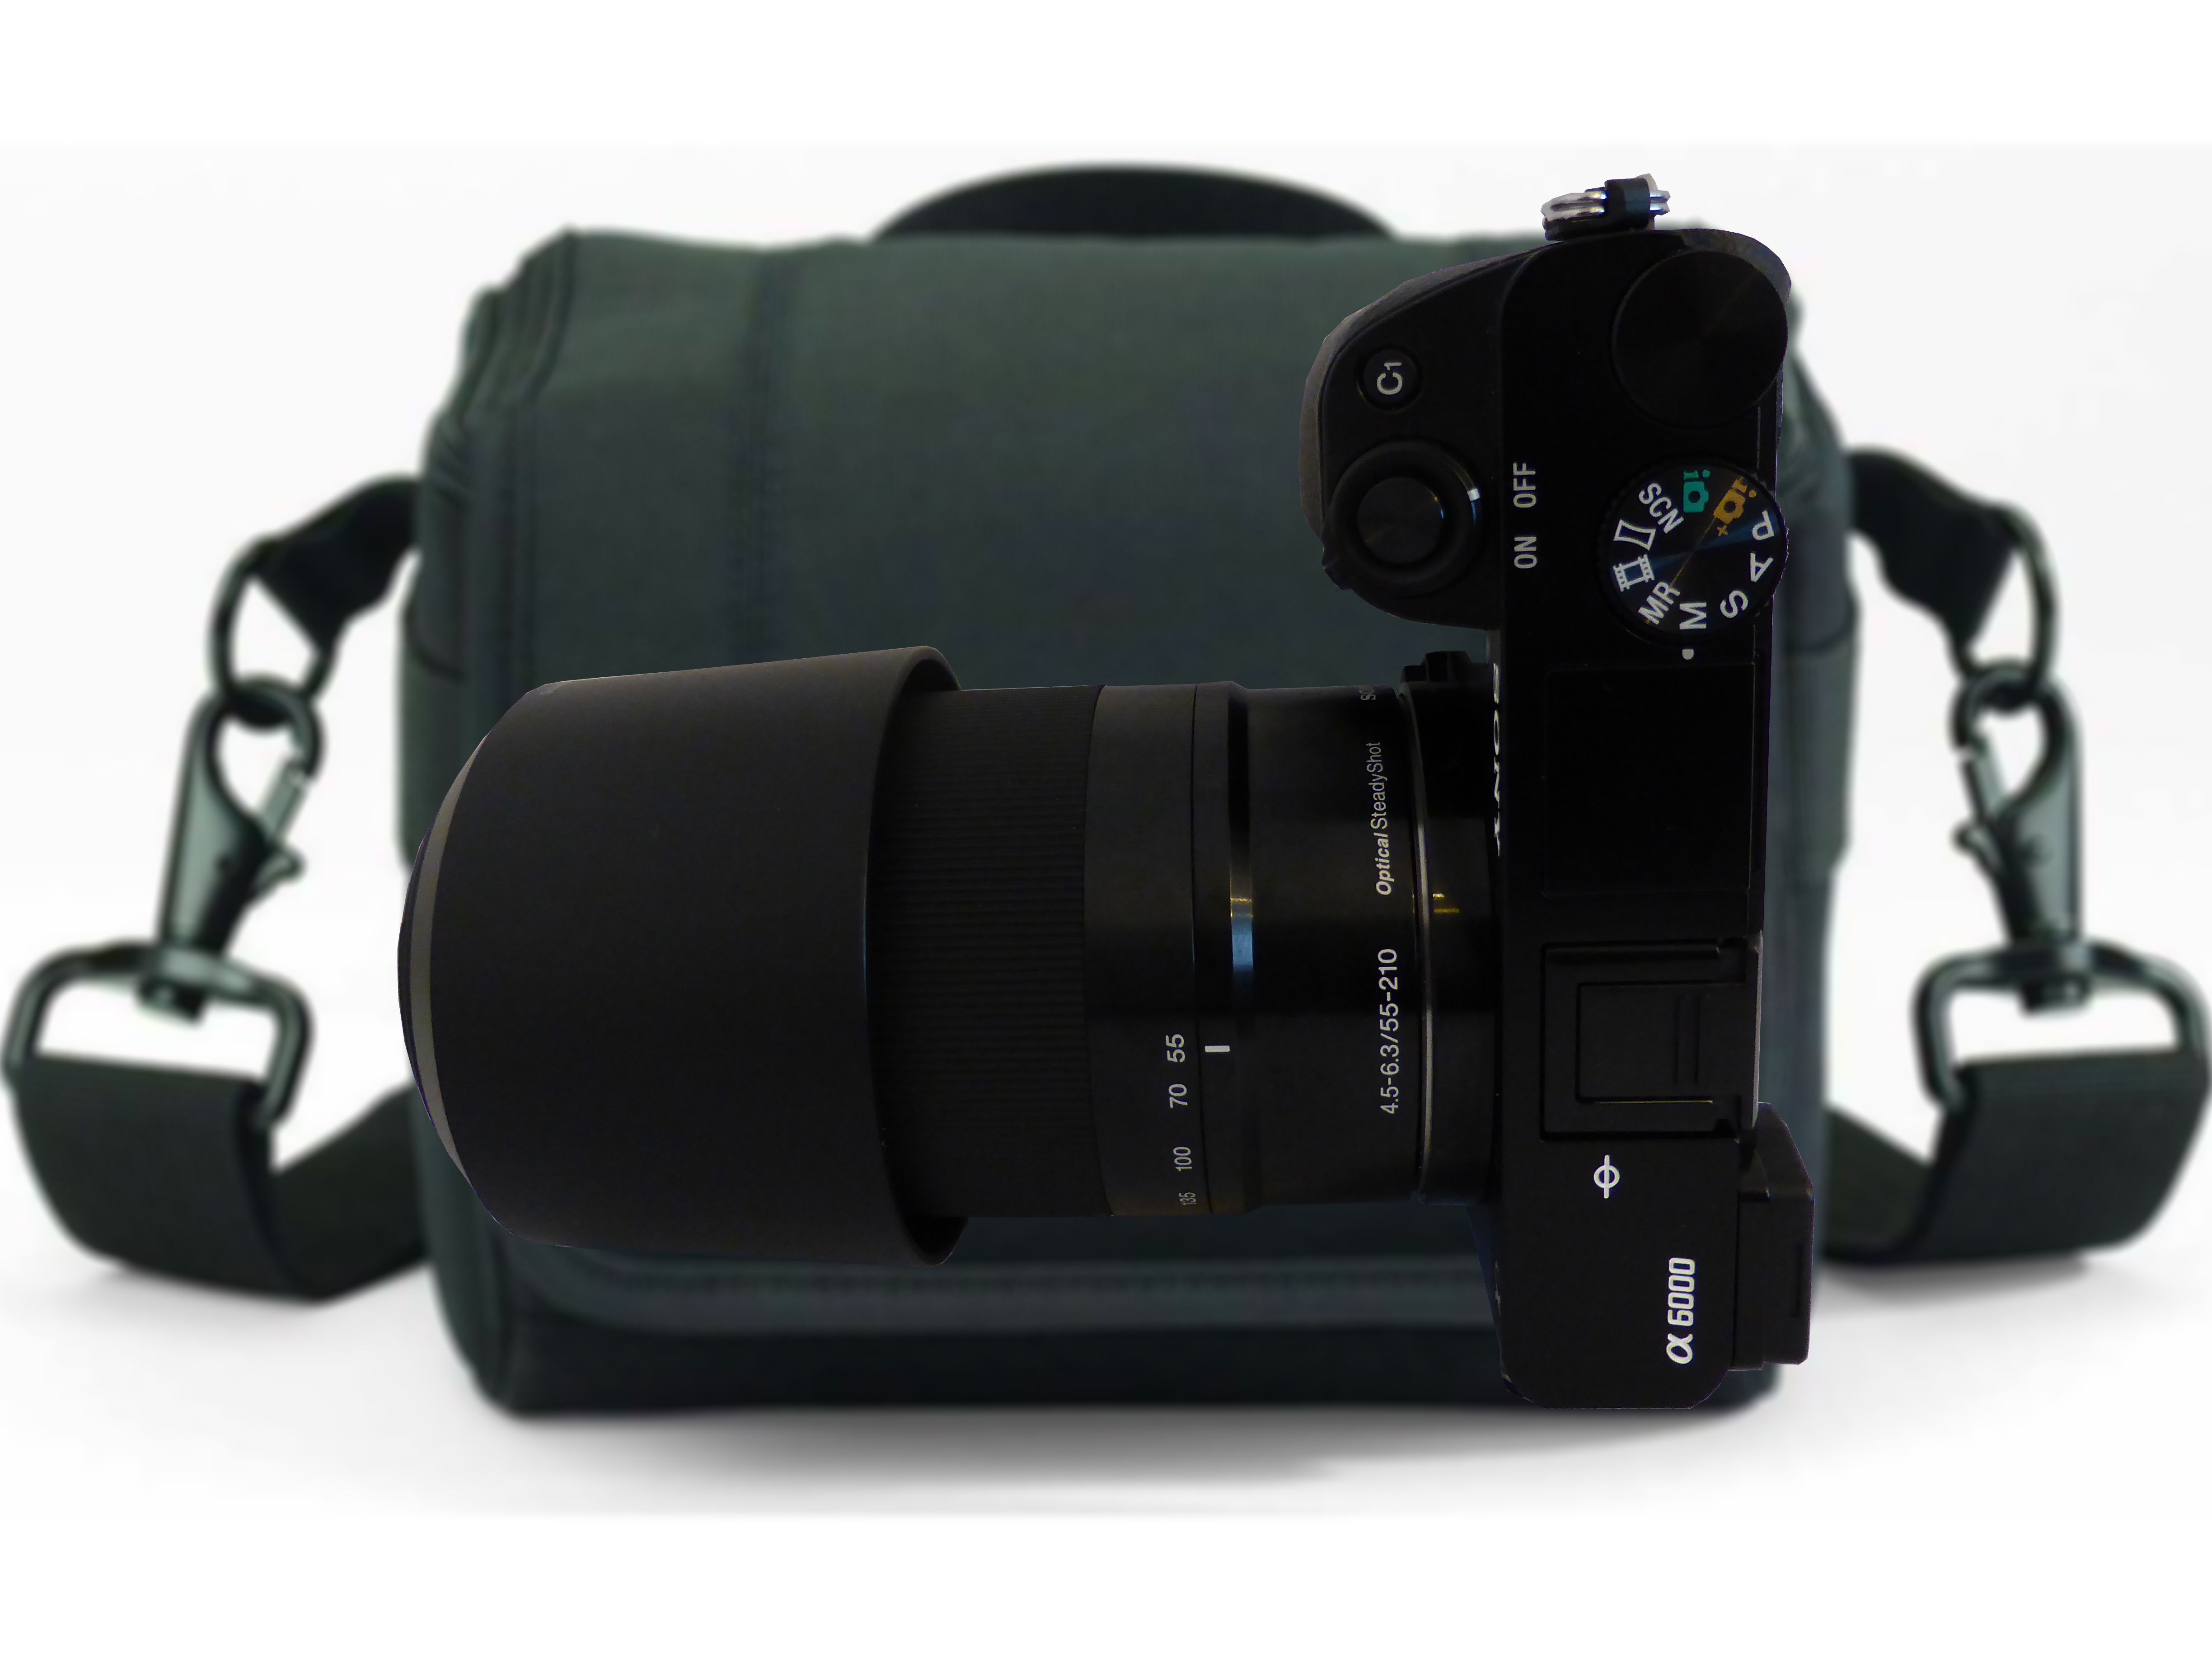 Looking For A Slim Fit Bag A6000 Sel 55 210 Sony Alpha Nex Lowepro Format 140 View Original Size